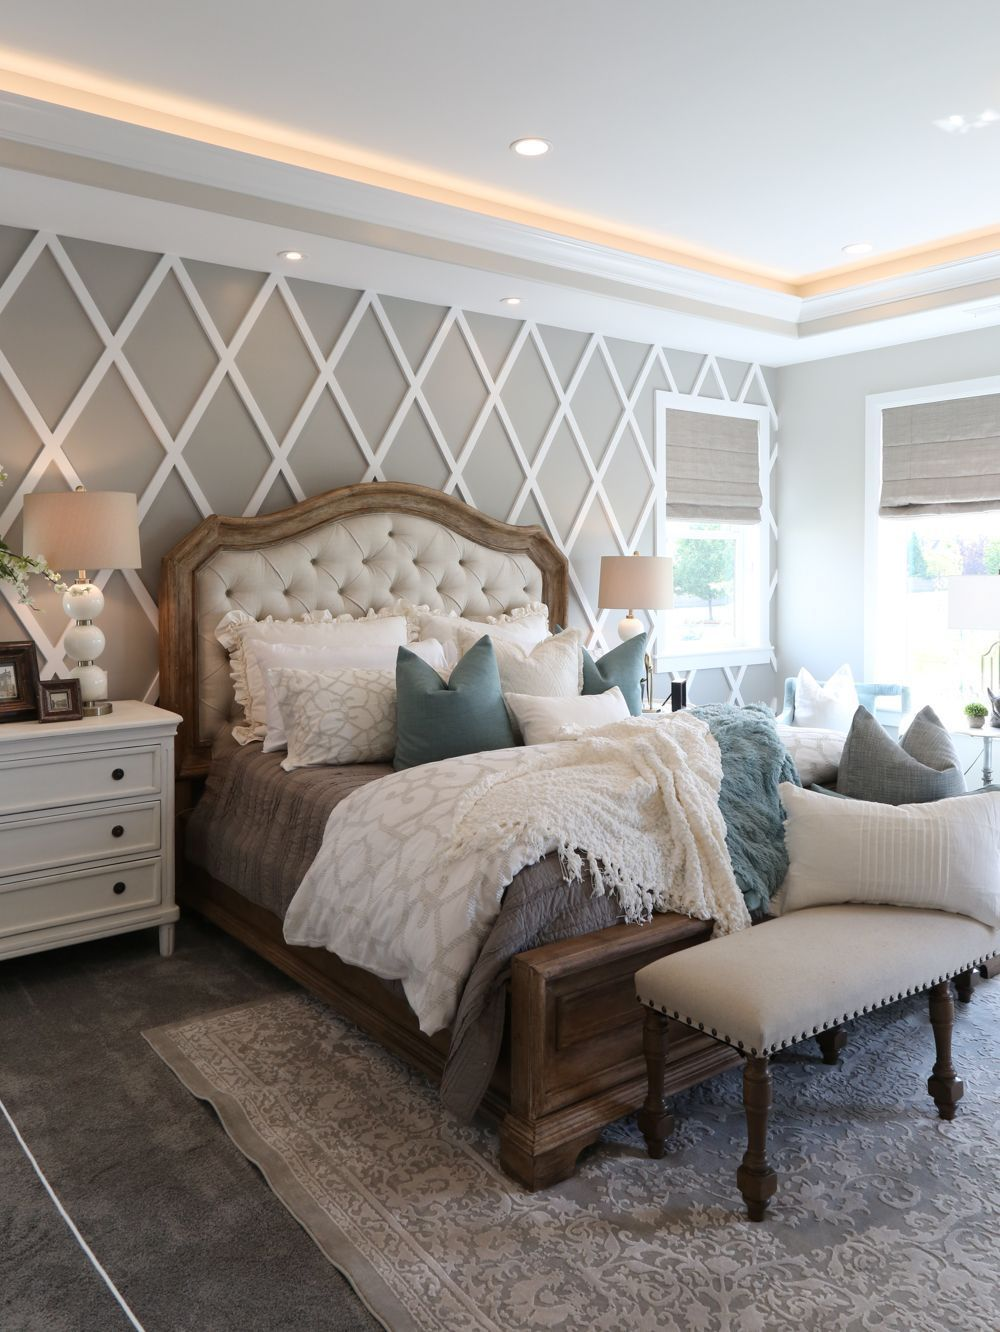 Modern french country home tour master bedroom country - Modern french country decor ...